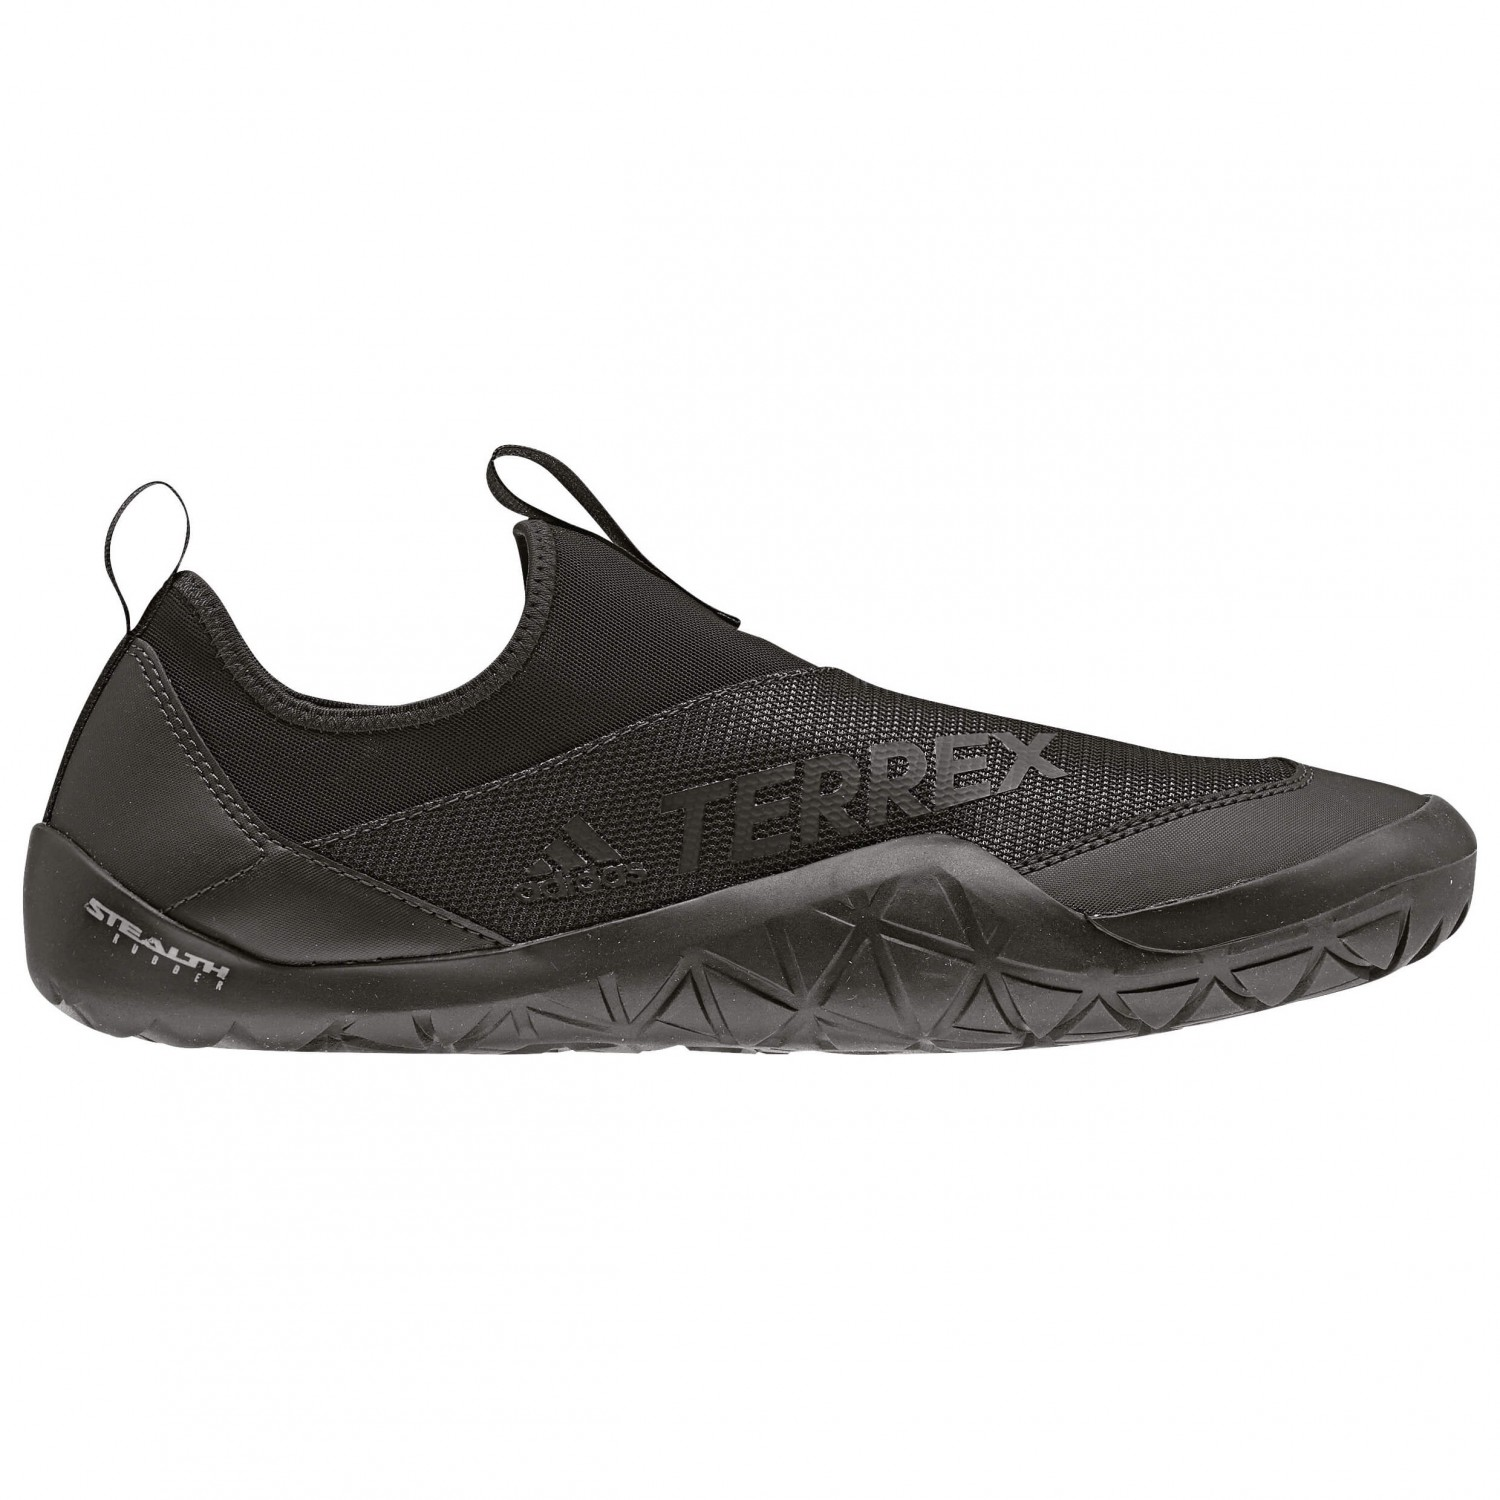 new release new lifestyle various styles Adidas Terrex CC Jawpaw II - Water Shoes | Buy online | Alpinetrek ...